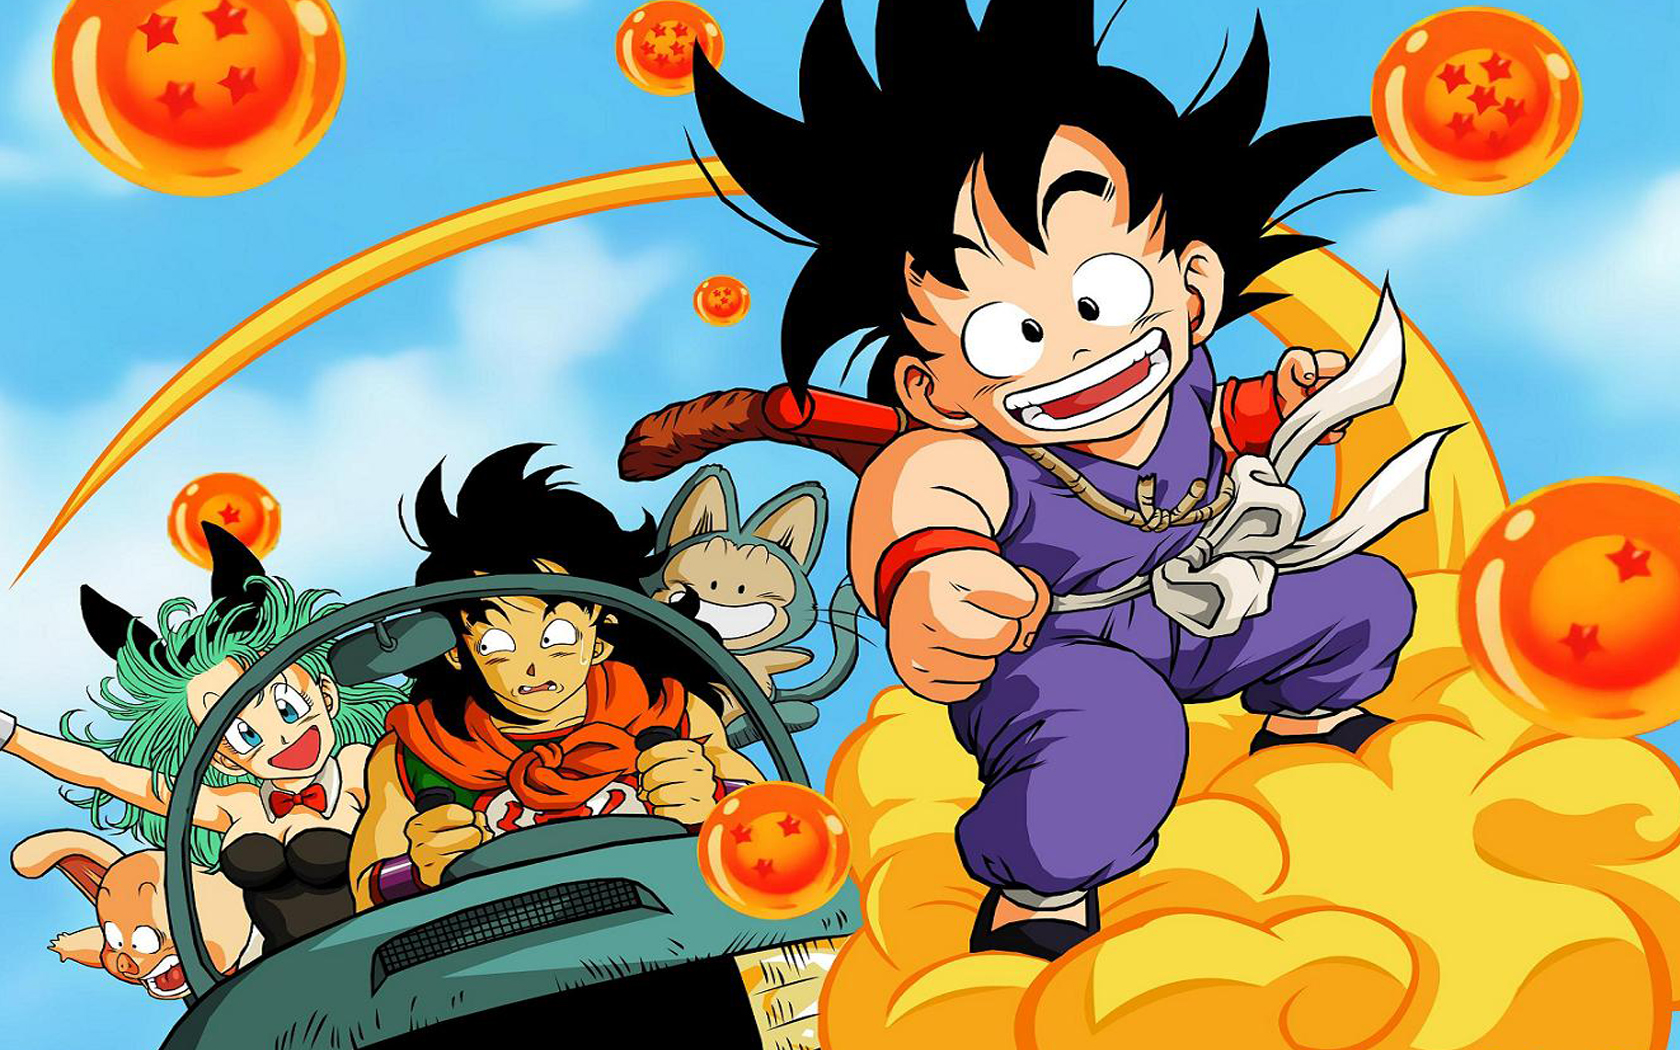 Dragon Ball دراغون بول